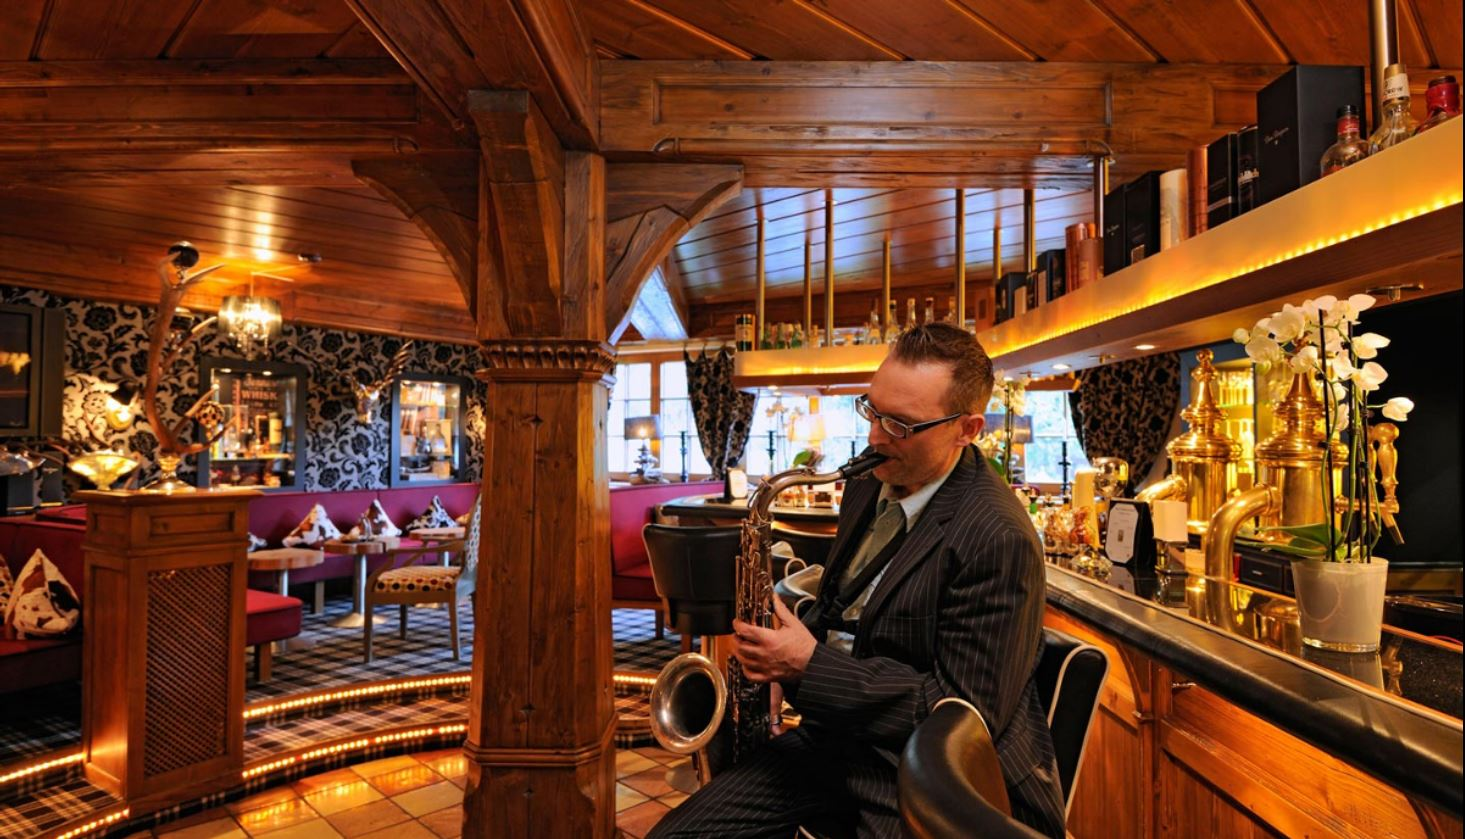 Piano-Bar-Hotel-Jagdhof-Glashütte